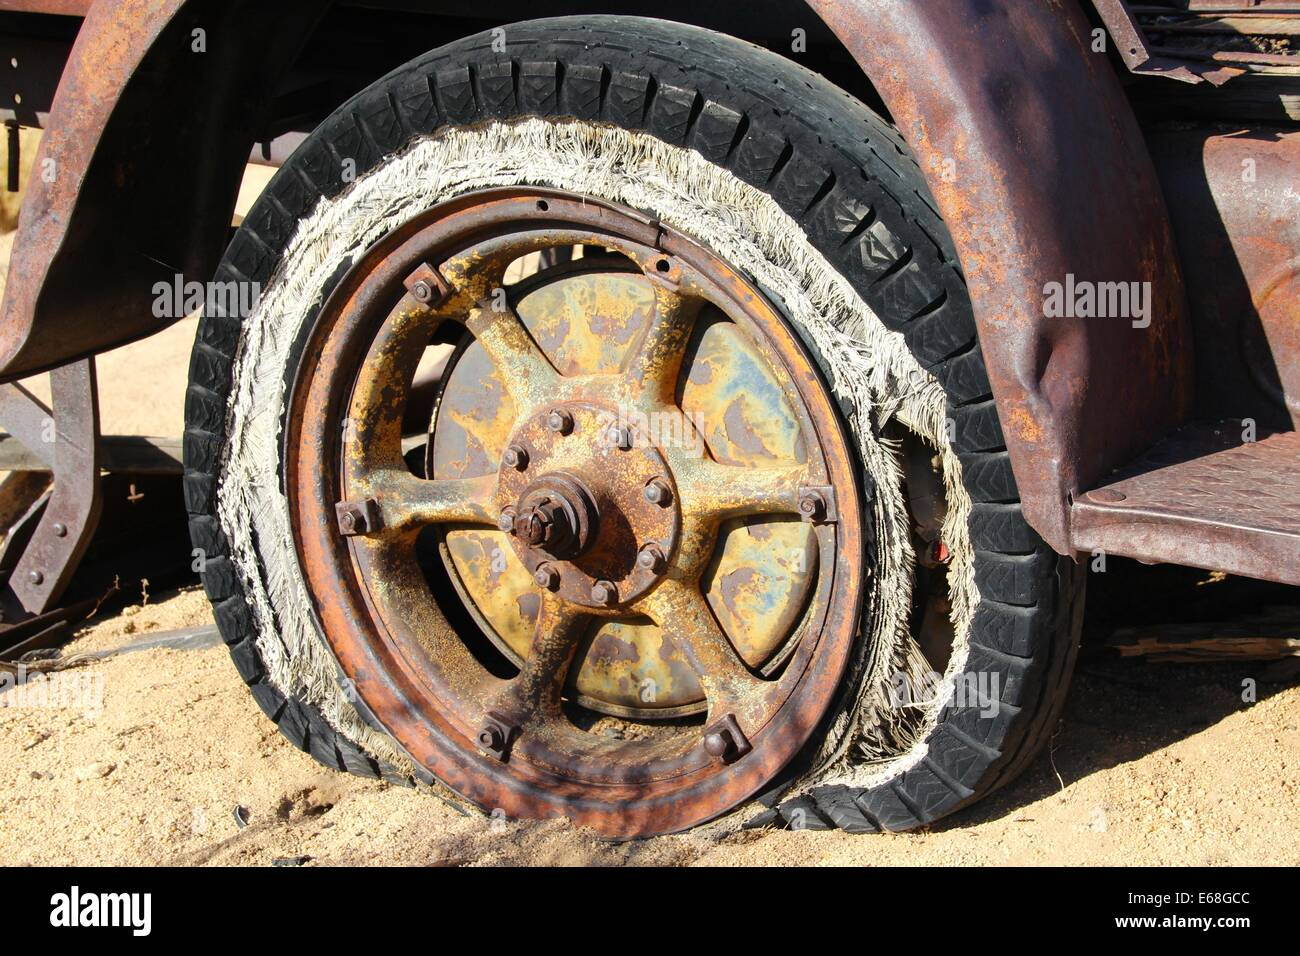 tyre wheel vintage antique old broken rusty - Stock Image